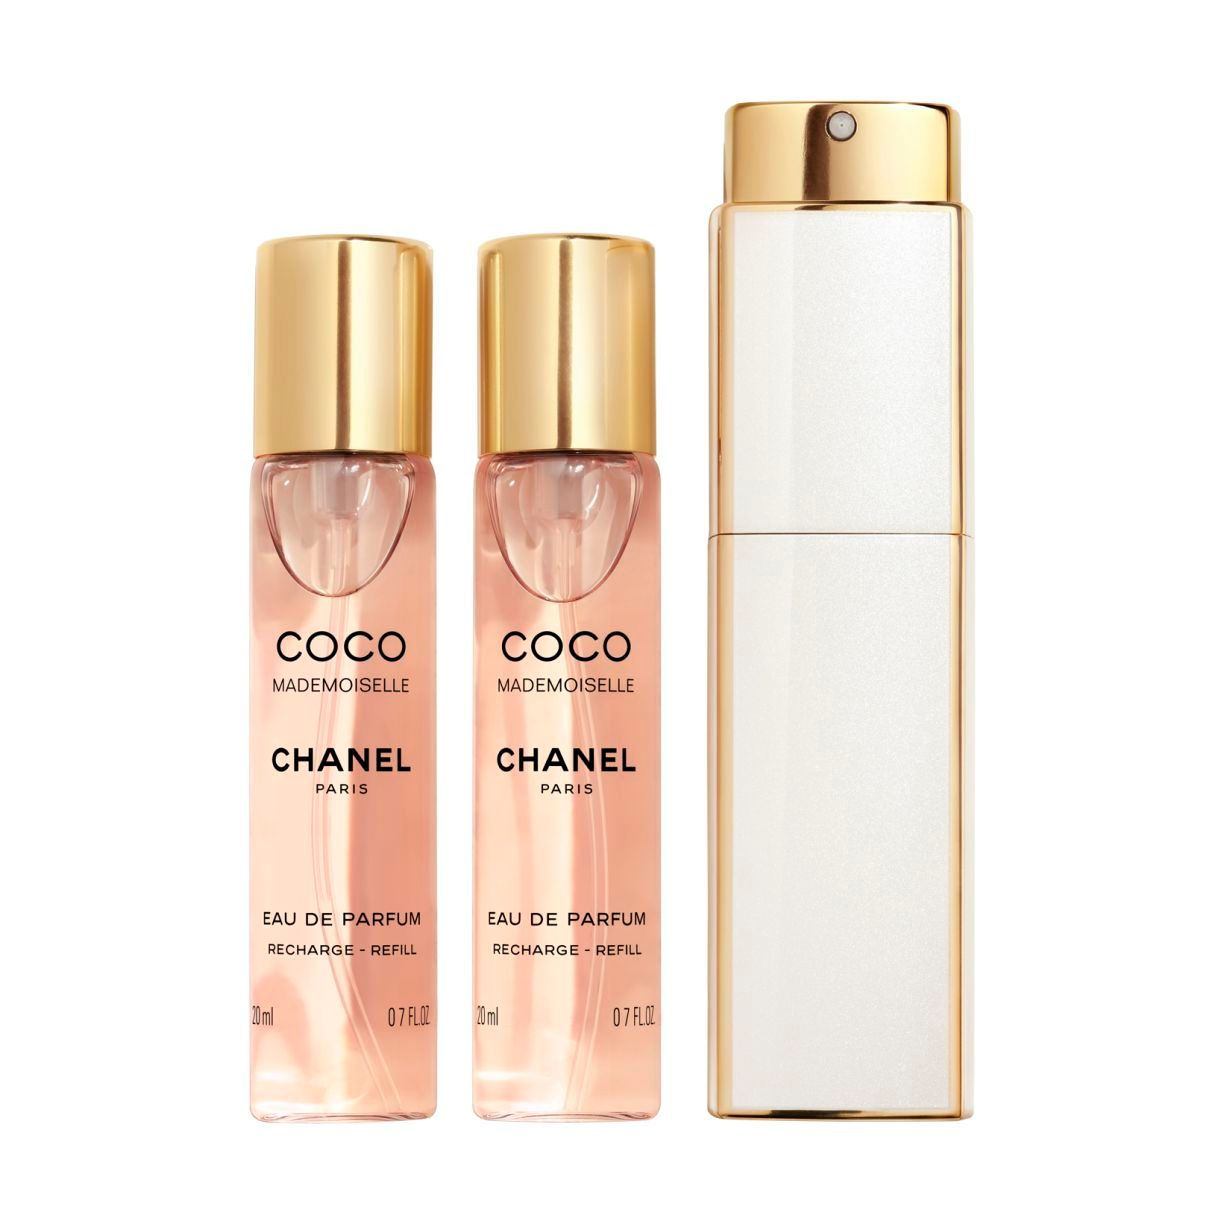 COCO MADEMOISELLE TWIST AND SPRAY Eau de Parfum rechargeable بخاخ برأس دوّار لماء العطر 3x20ml